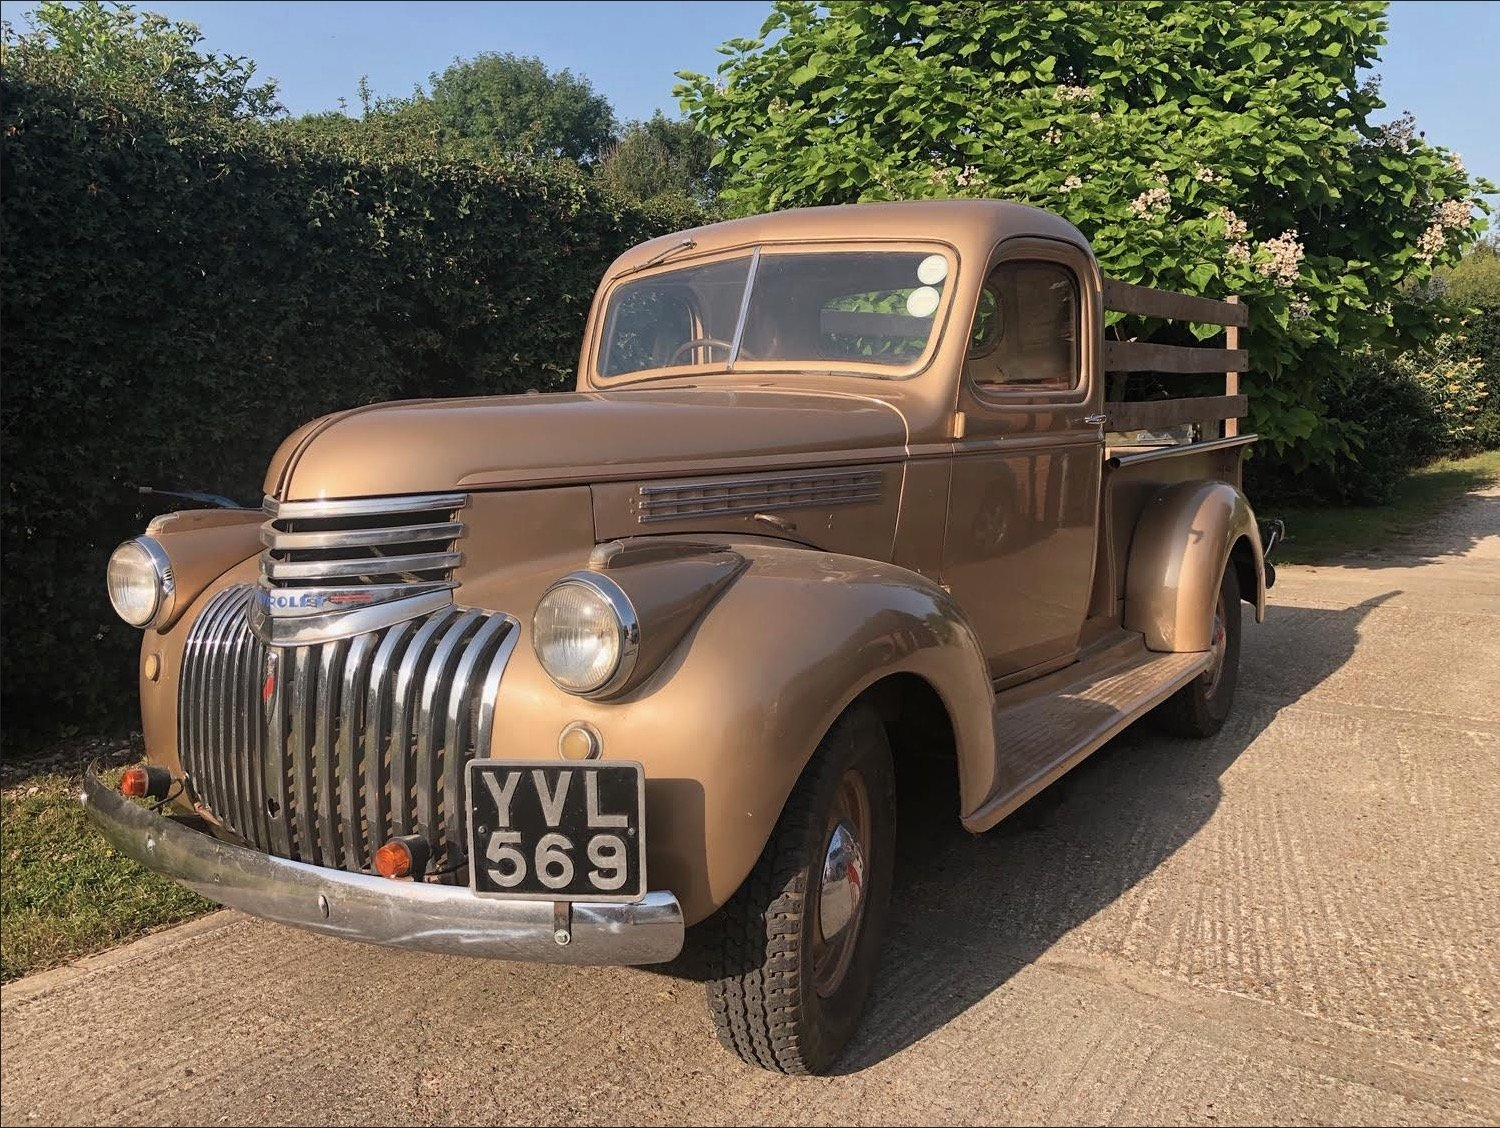 1941 Chevrolet ½ Ton Truck For Sale (picture 1 of 4)